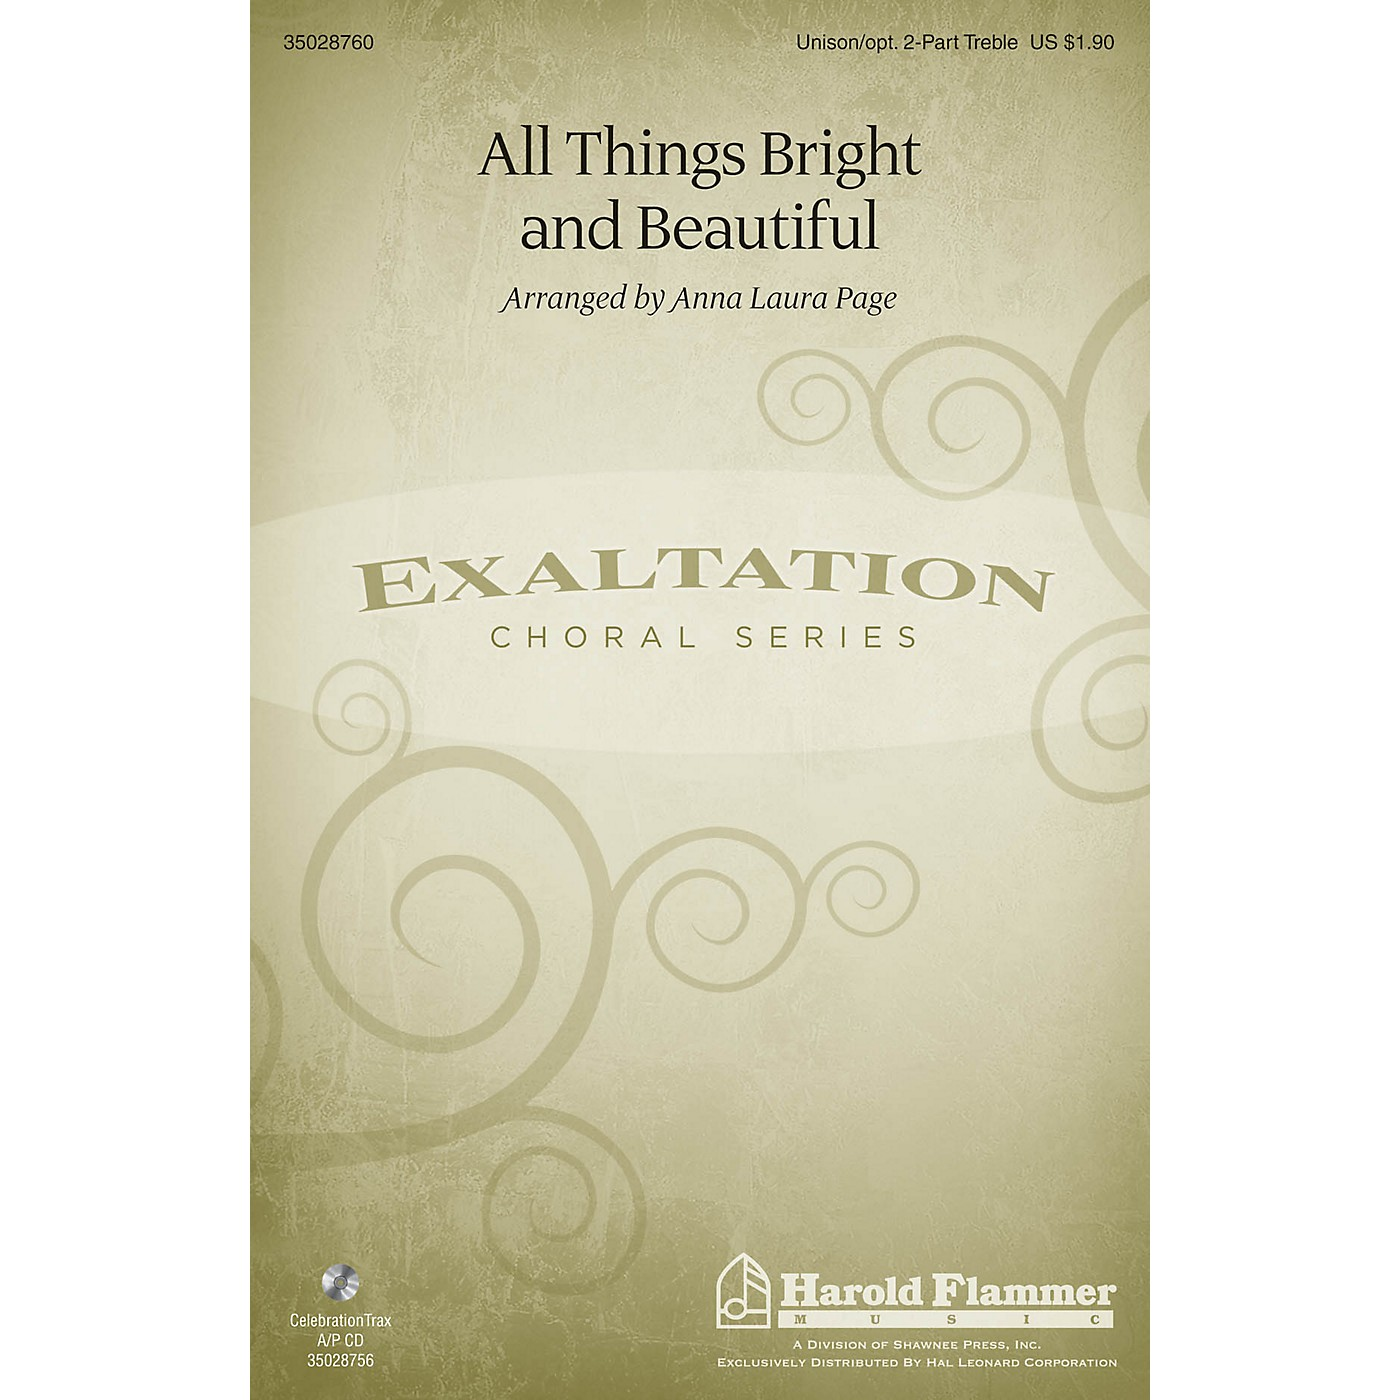 Shawnee Press All Things Bright and Beautiful Unison/2-Part Treble arranged by Anna Laura Page thumbnail